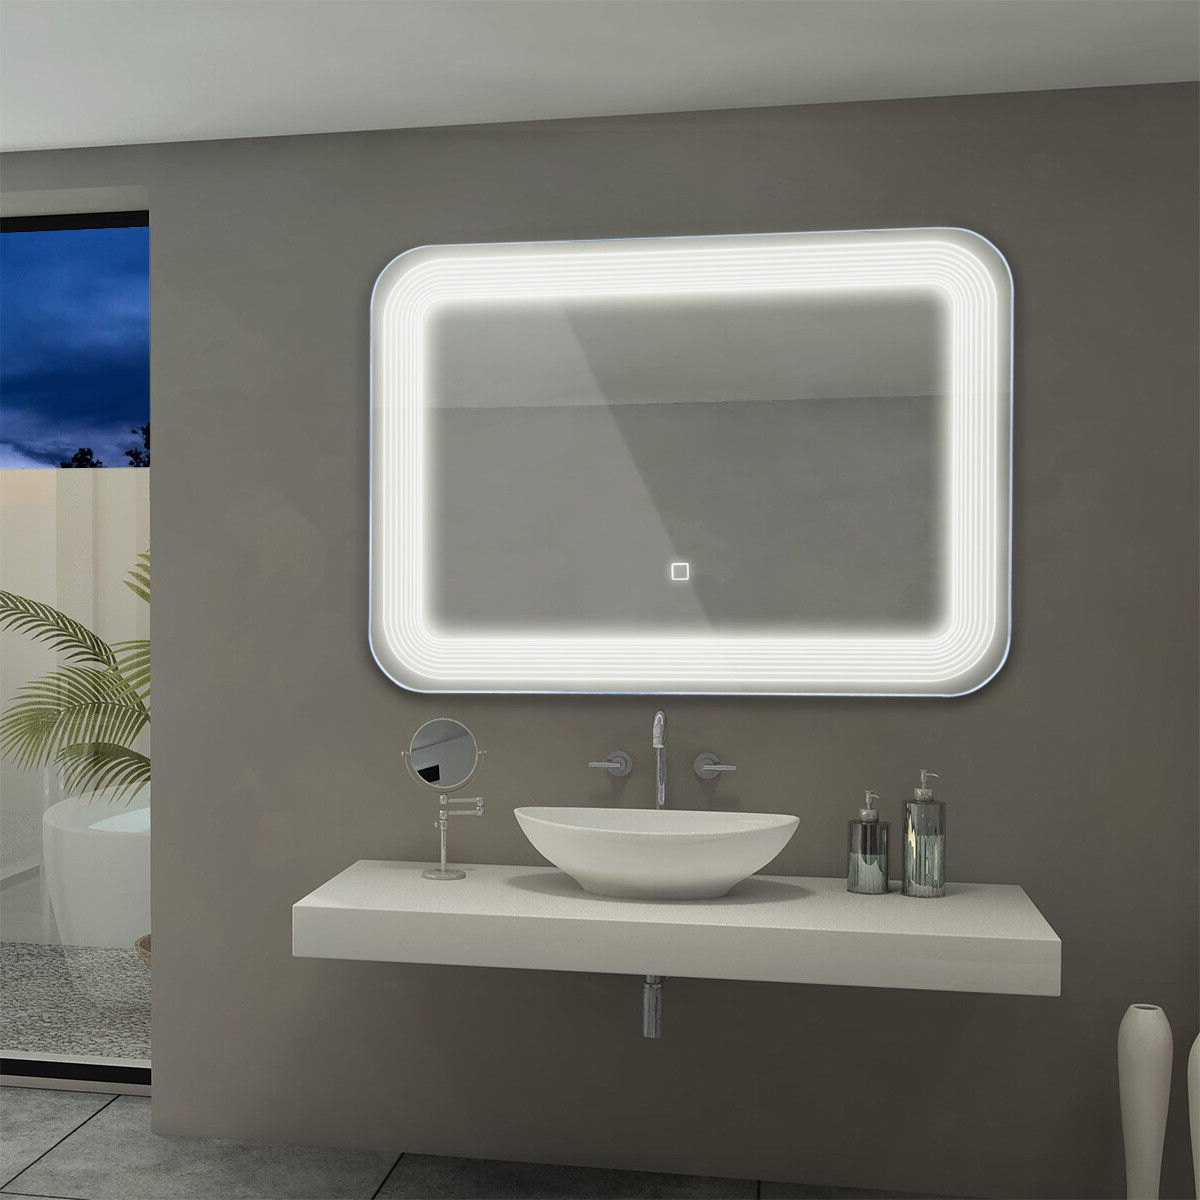 Bathroom Vanity Wall Mirrors With Regard To 2020 Costway Led Wall Mount Mirror Bathroom Vanity Makeup Illuminated Mirror W/touch Button (View 19 of 20)